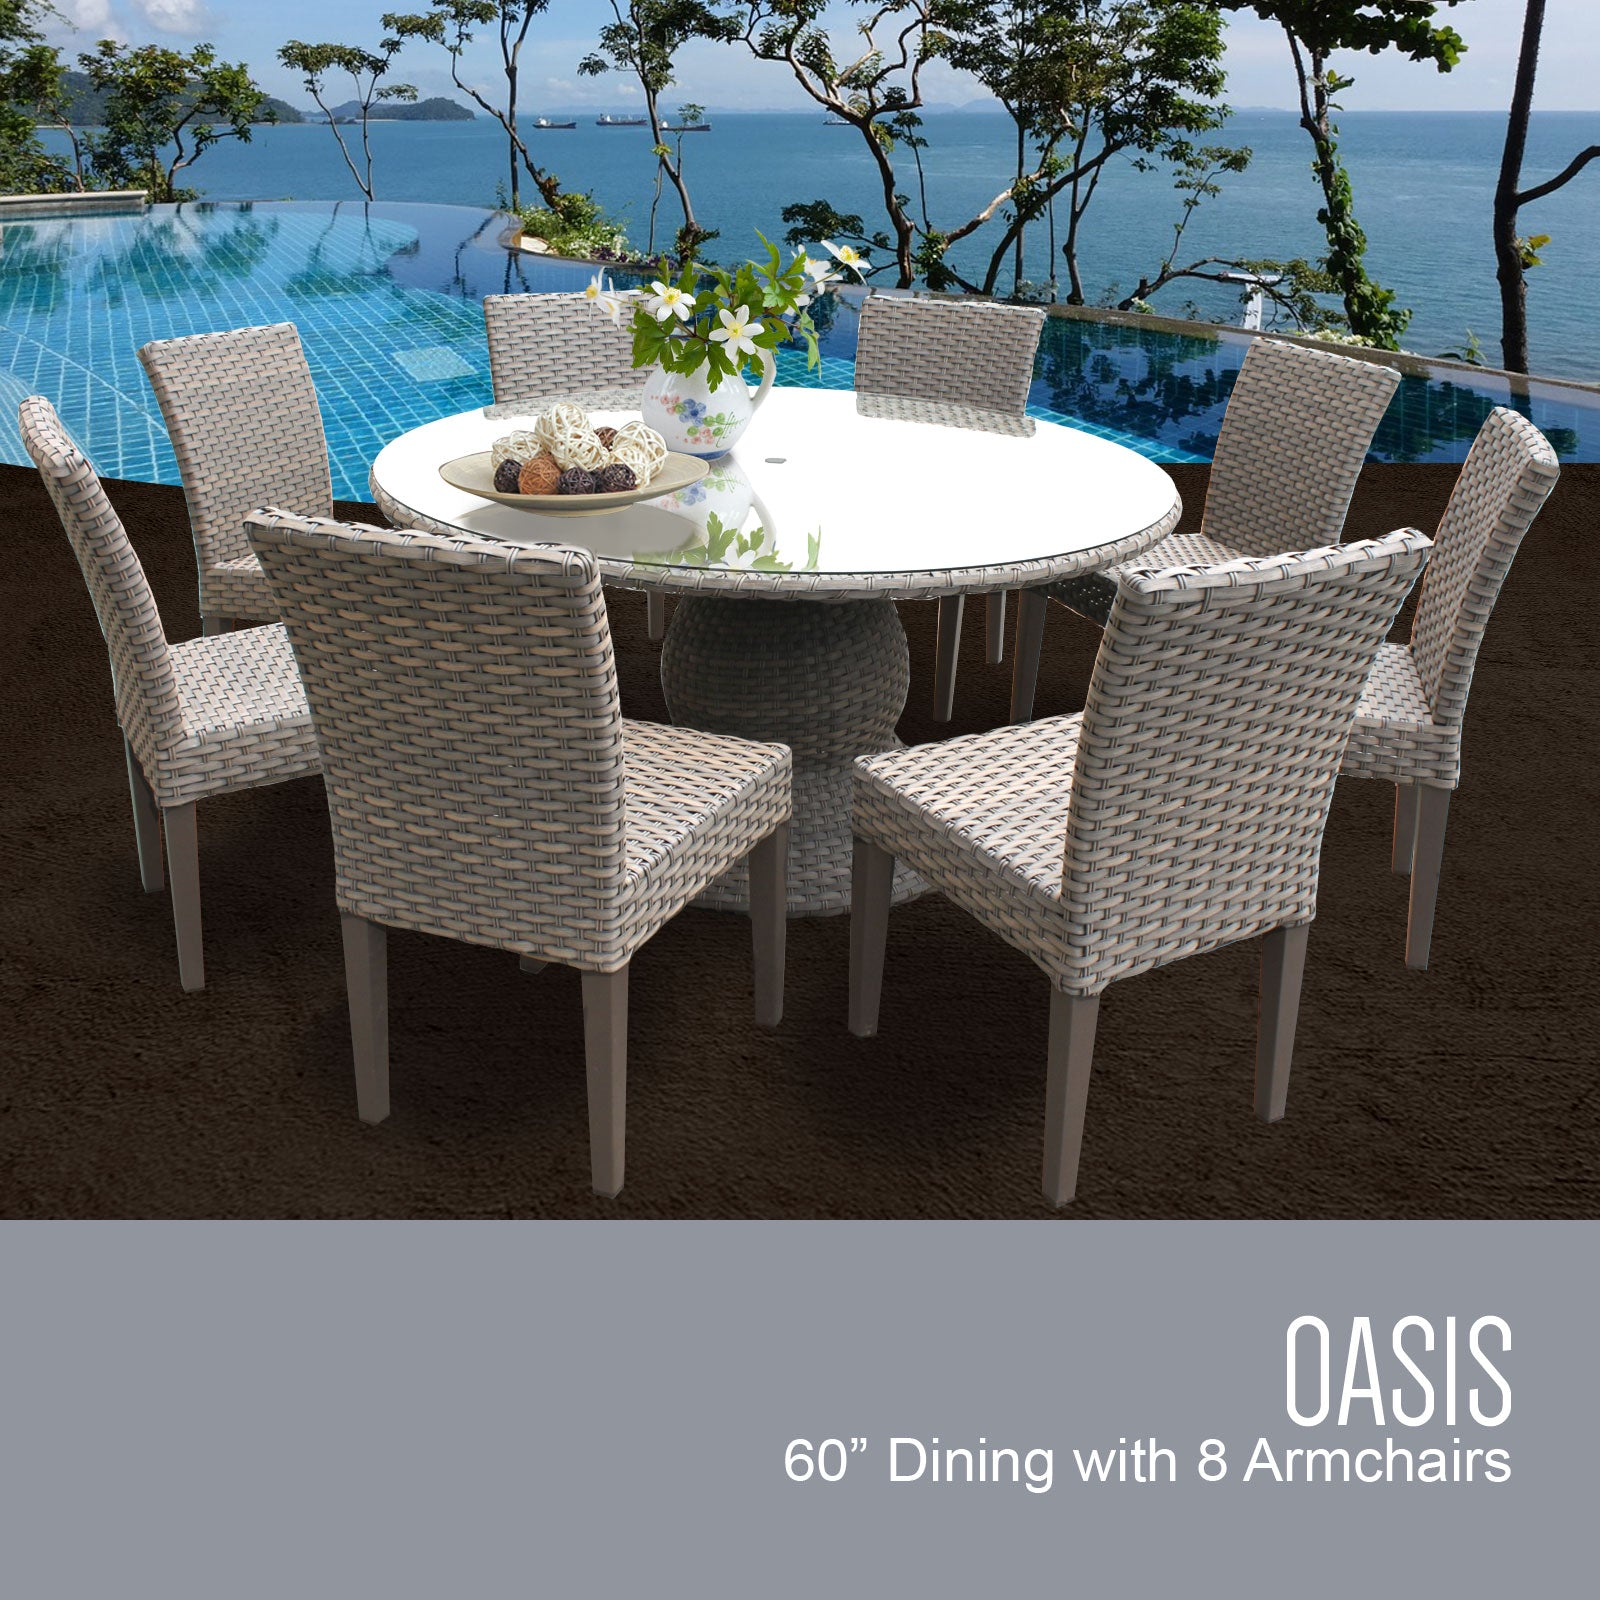 Oasis 60 Inch Outdoor Patio Dining Table with 8 Armless Chairs (No Cushions)